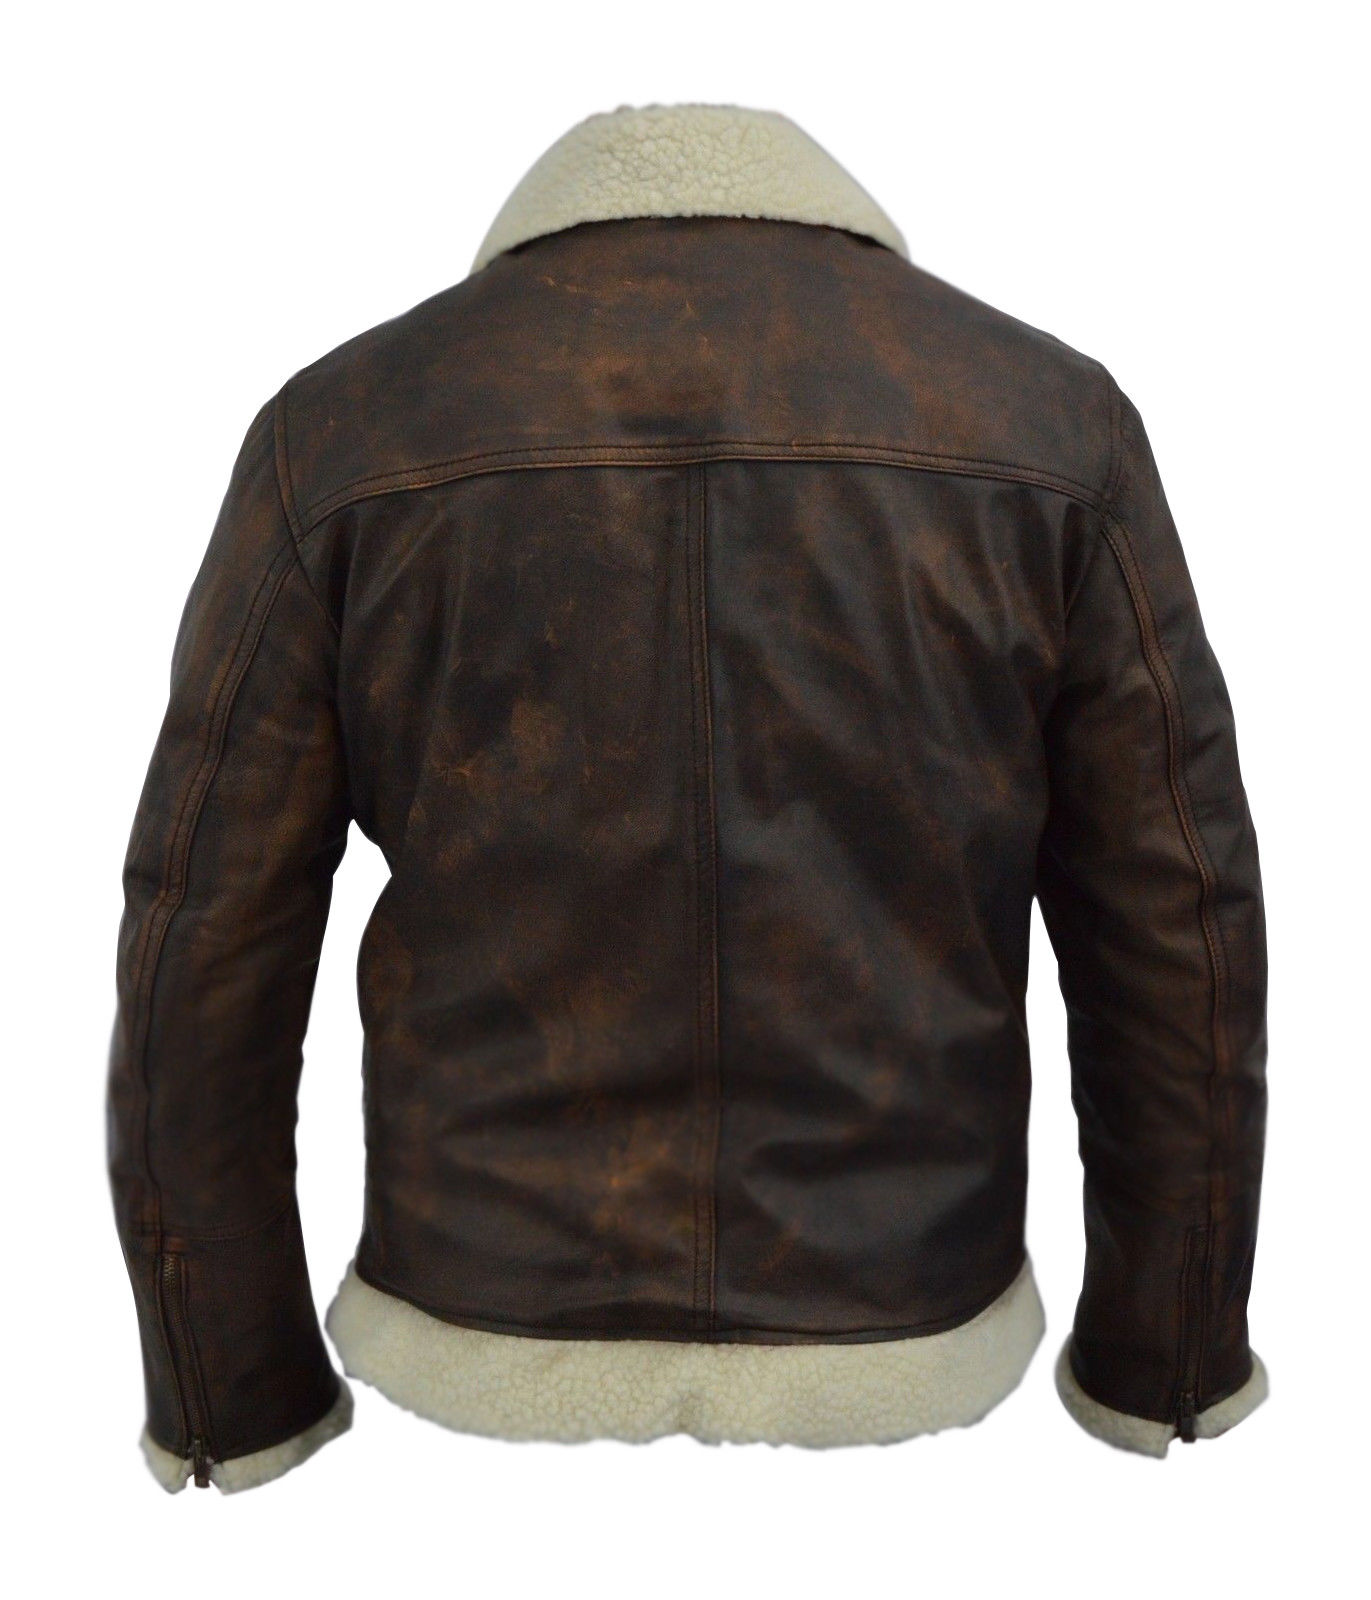 Xander Cage Vin Diesel Distressed Brown Jacket